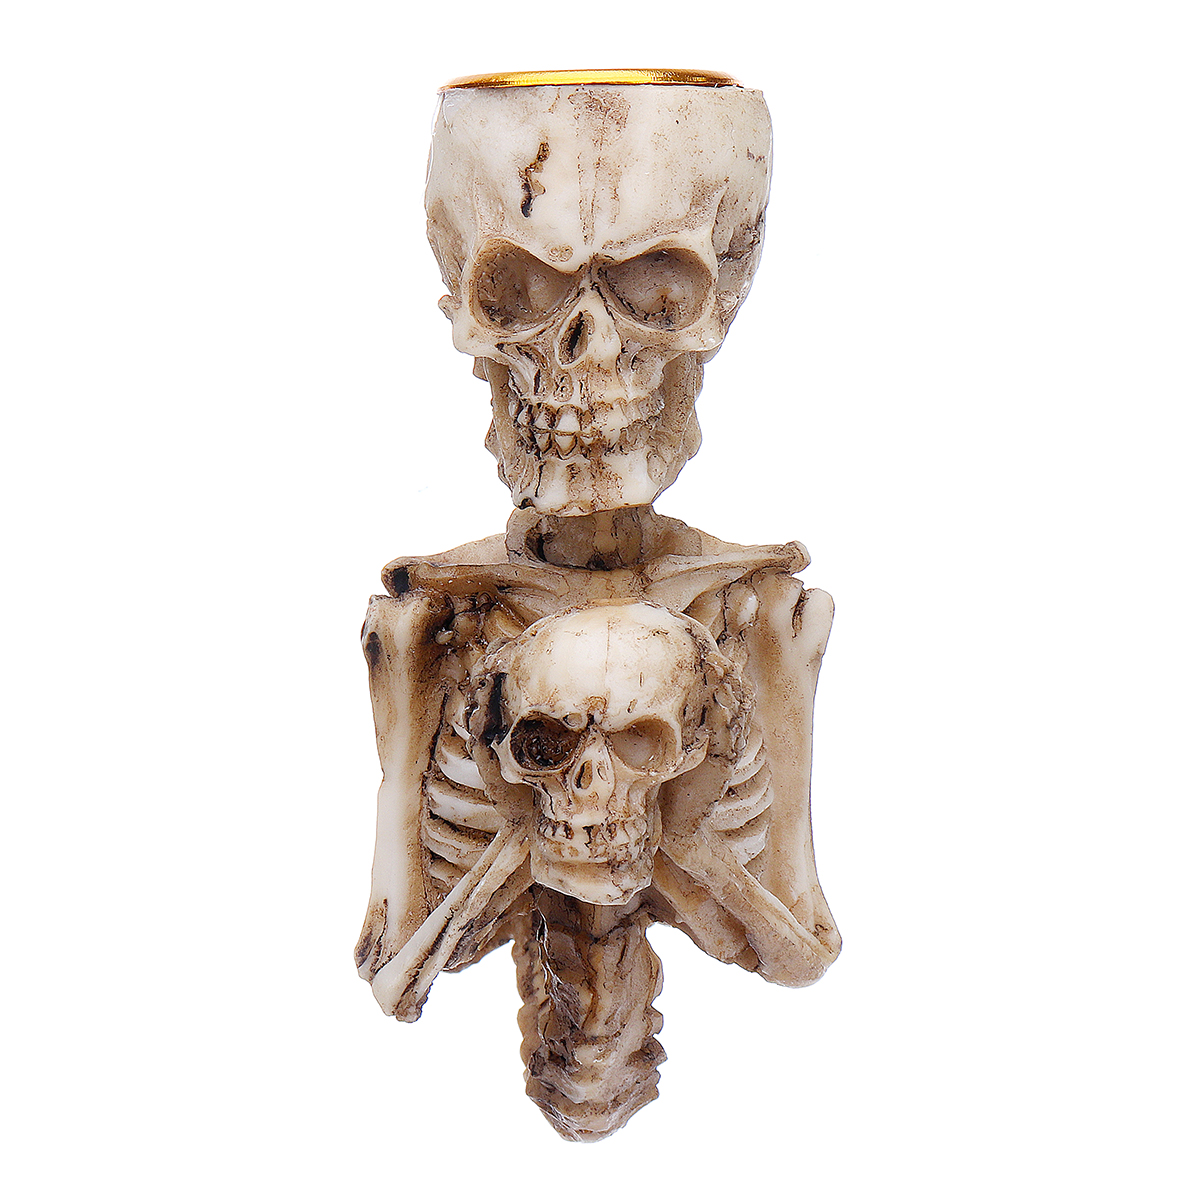 Resin Craft Statues Skull Candlestick Creative Figurines Sculpture Decorations